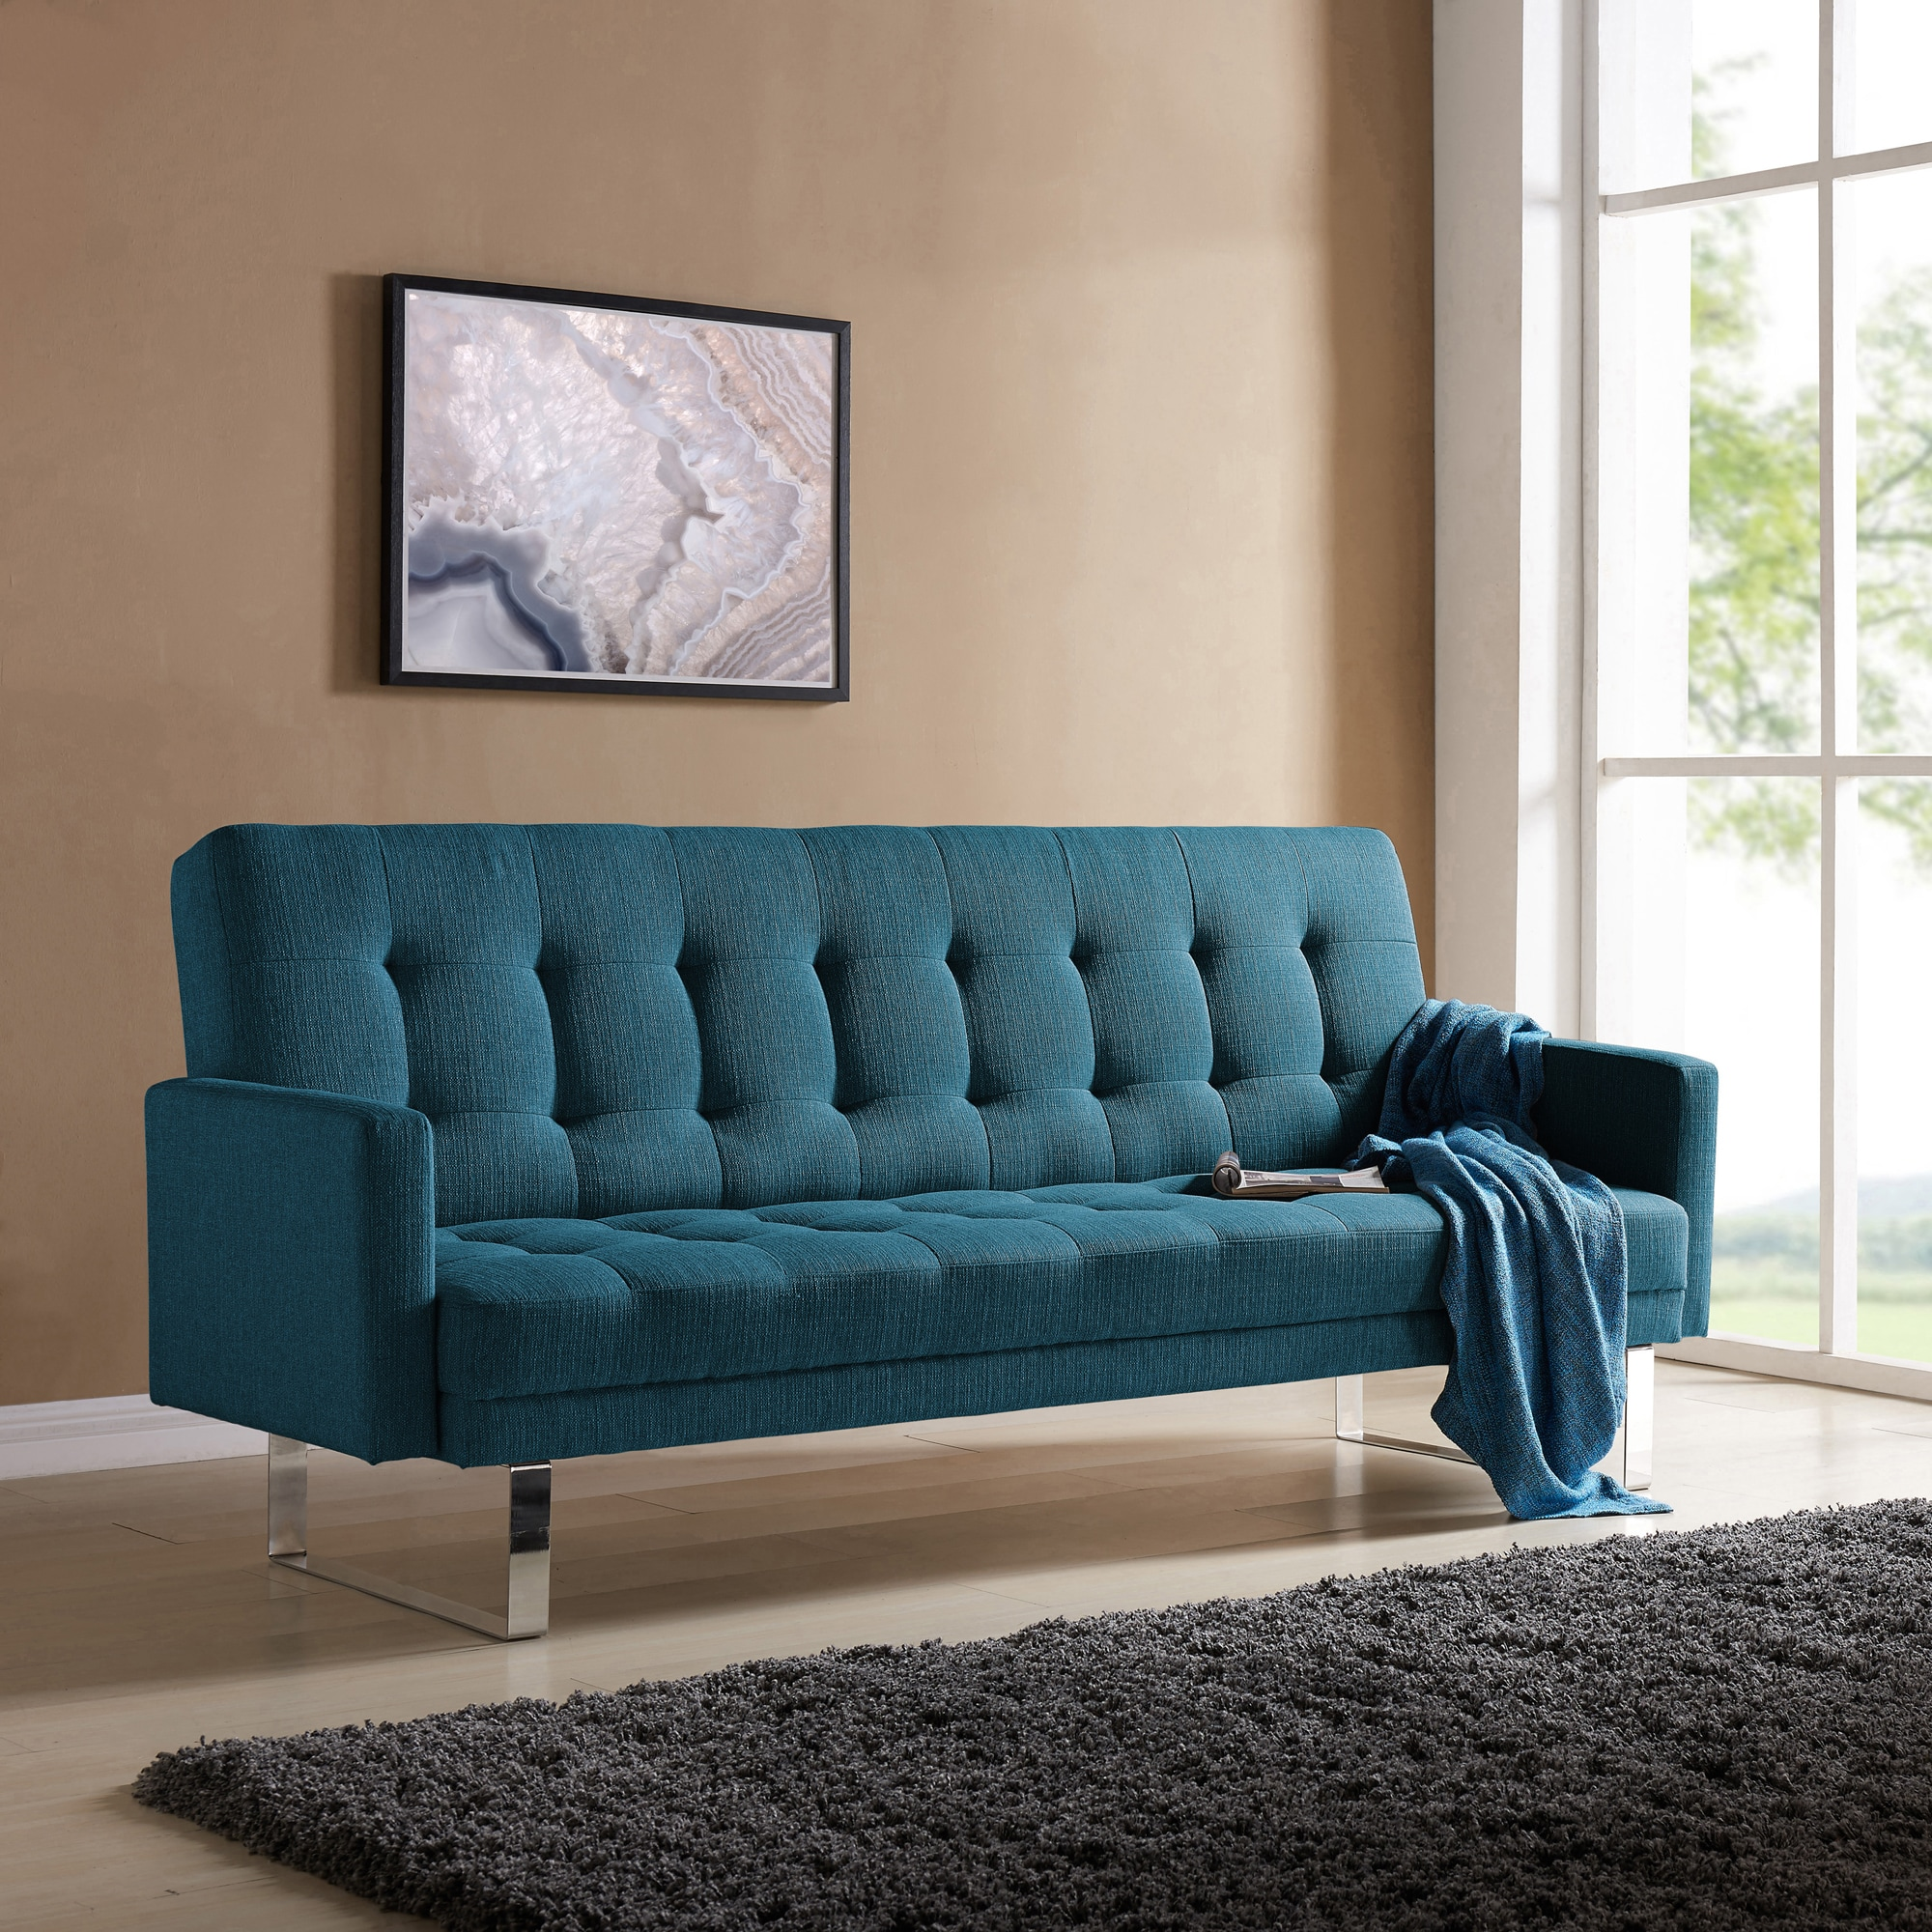 Handy Living Springfield Caribbean Blue Linen Click Clack Futon Sofa Bed On Free Shipping Today Com 17520743